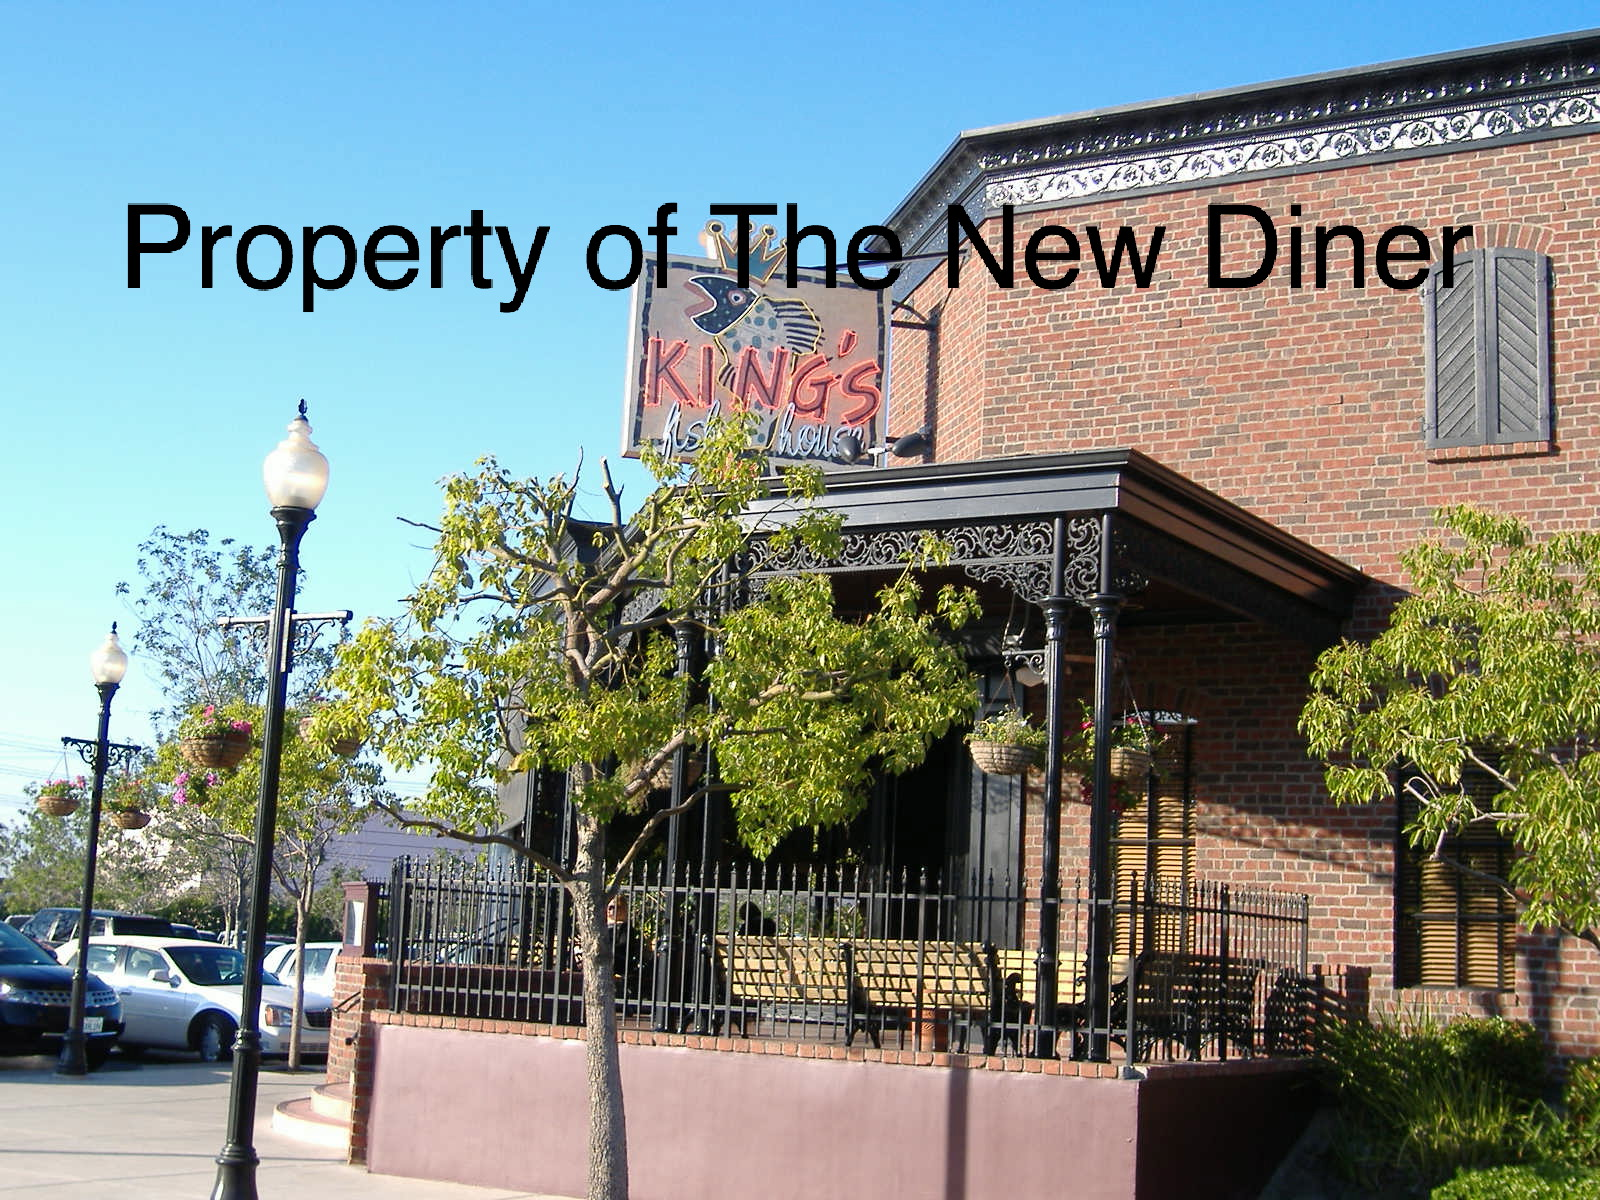 The new diner kings fish house anaheim for Kings fish house